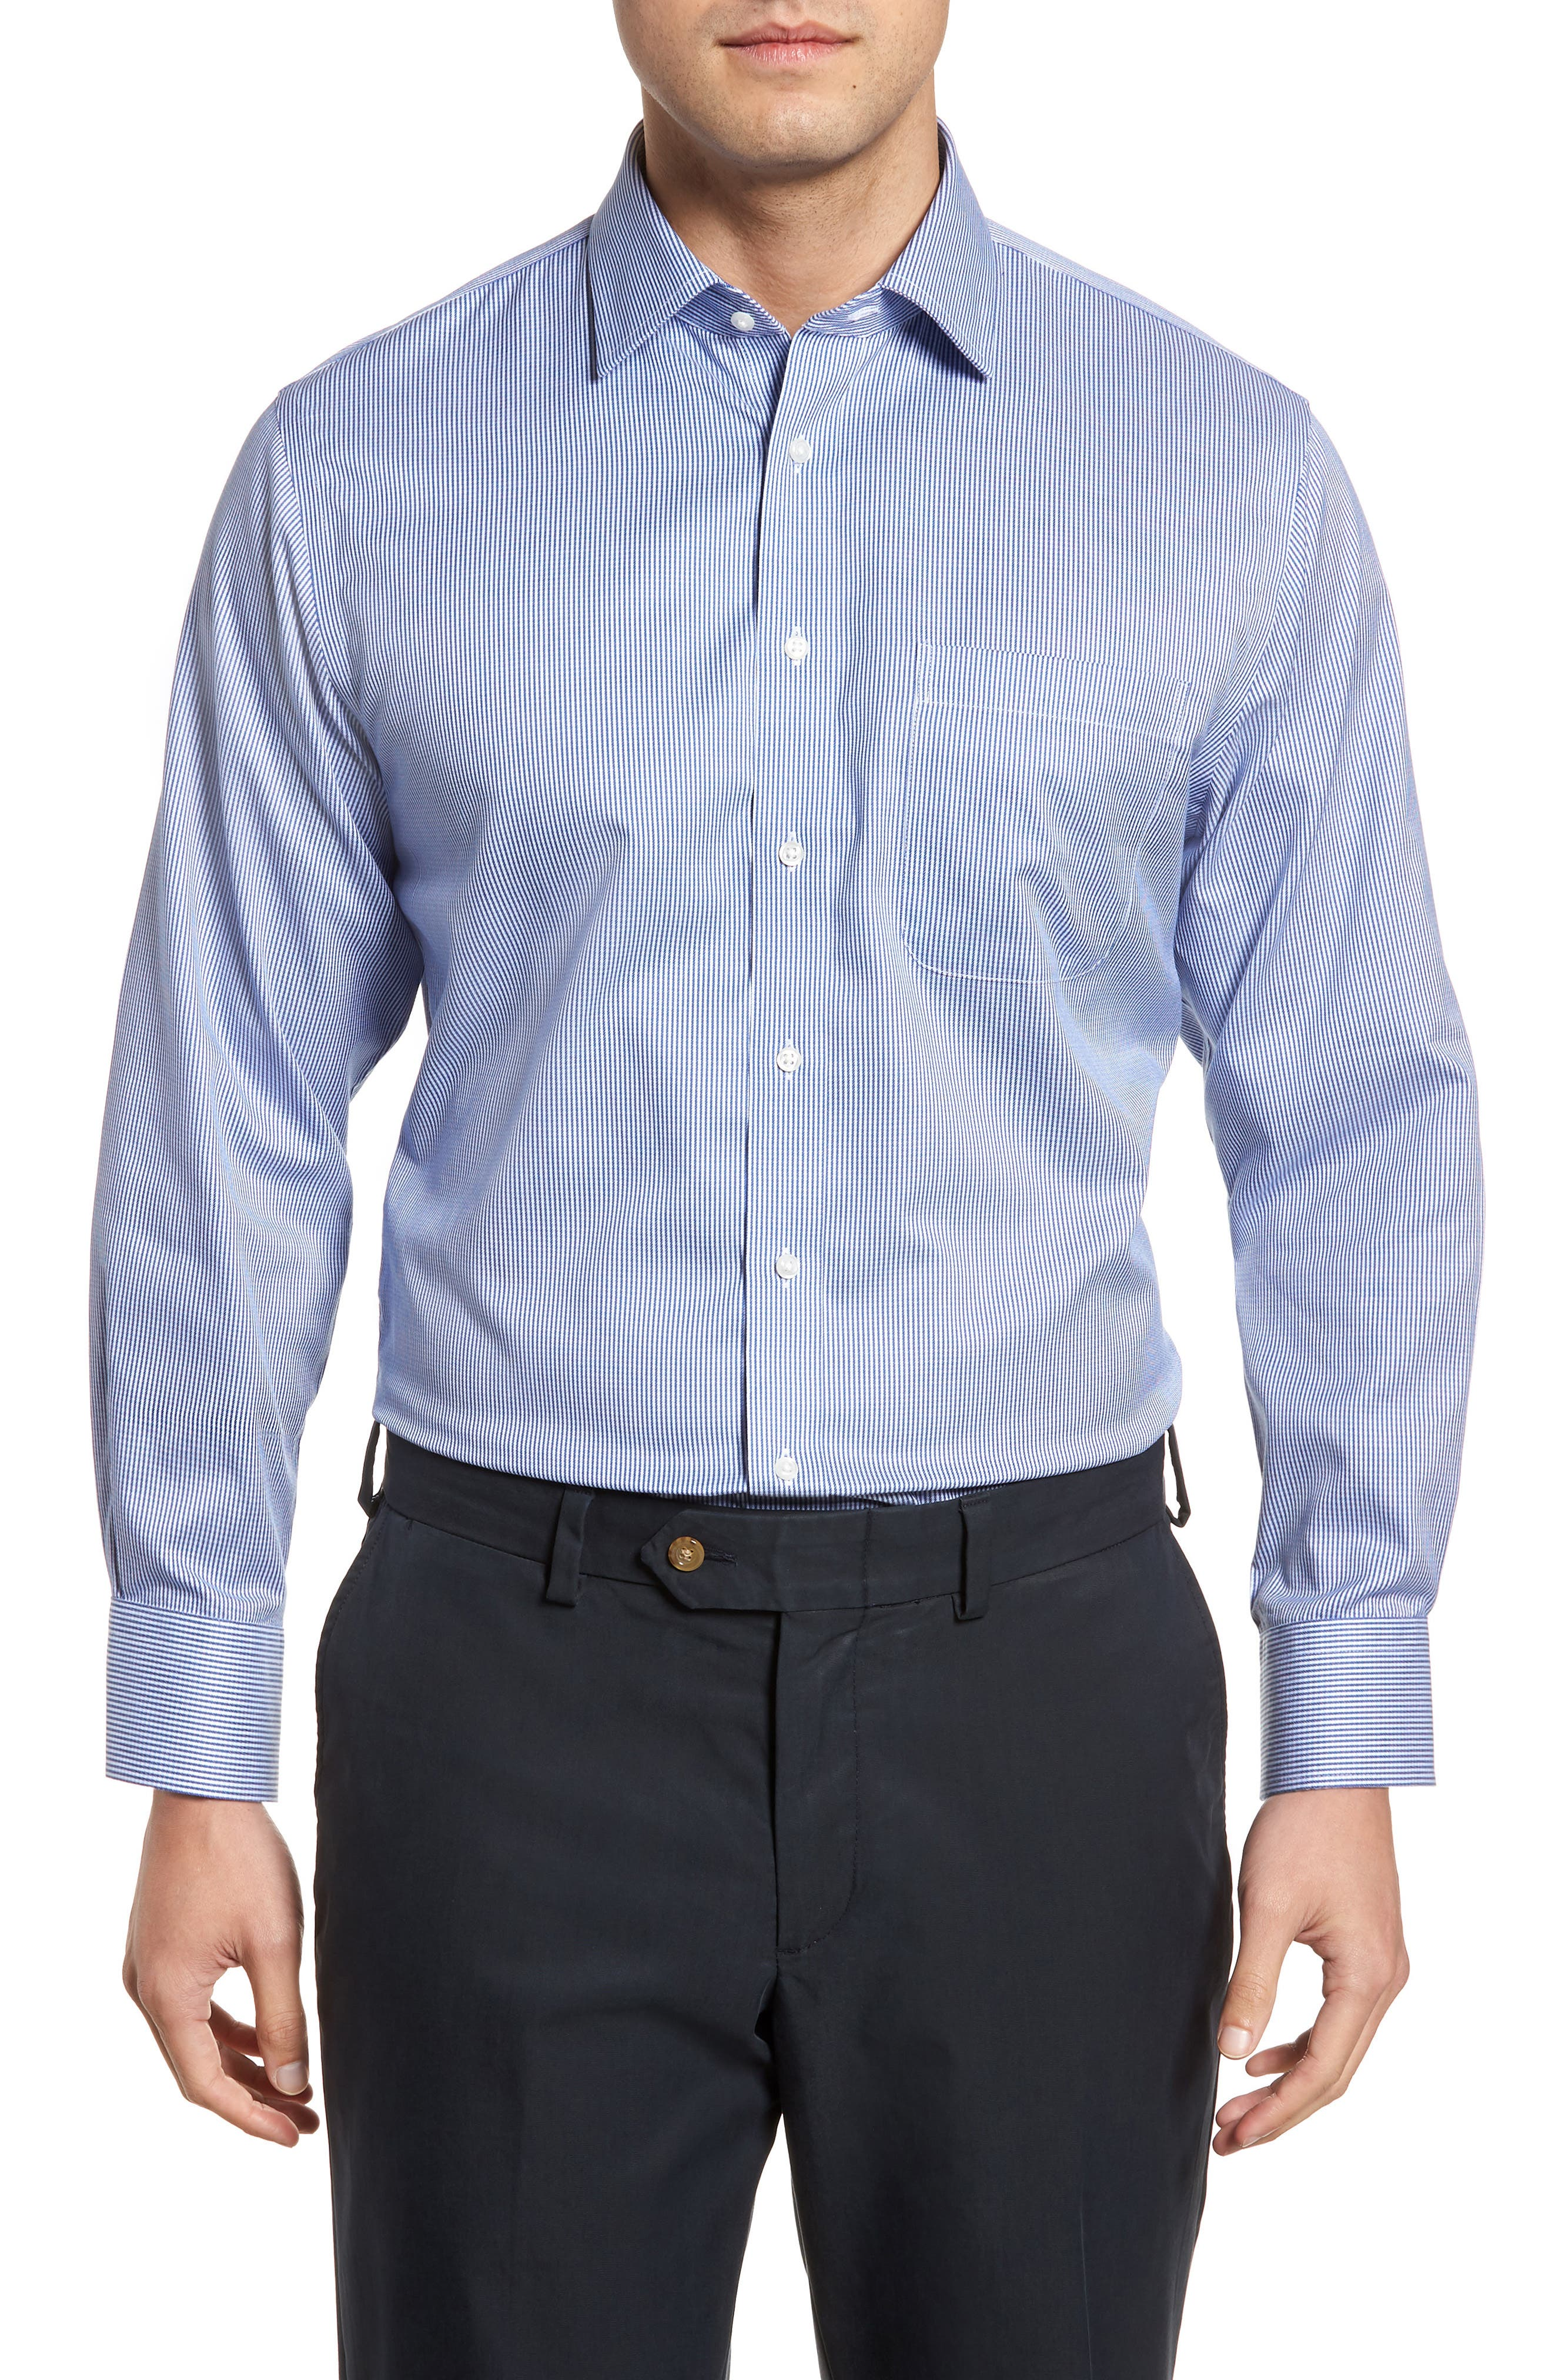 Main Image - Nordstrom Men's Shop Smartcare™ Traditional Fit Stripe Dress Shirt